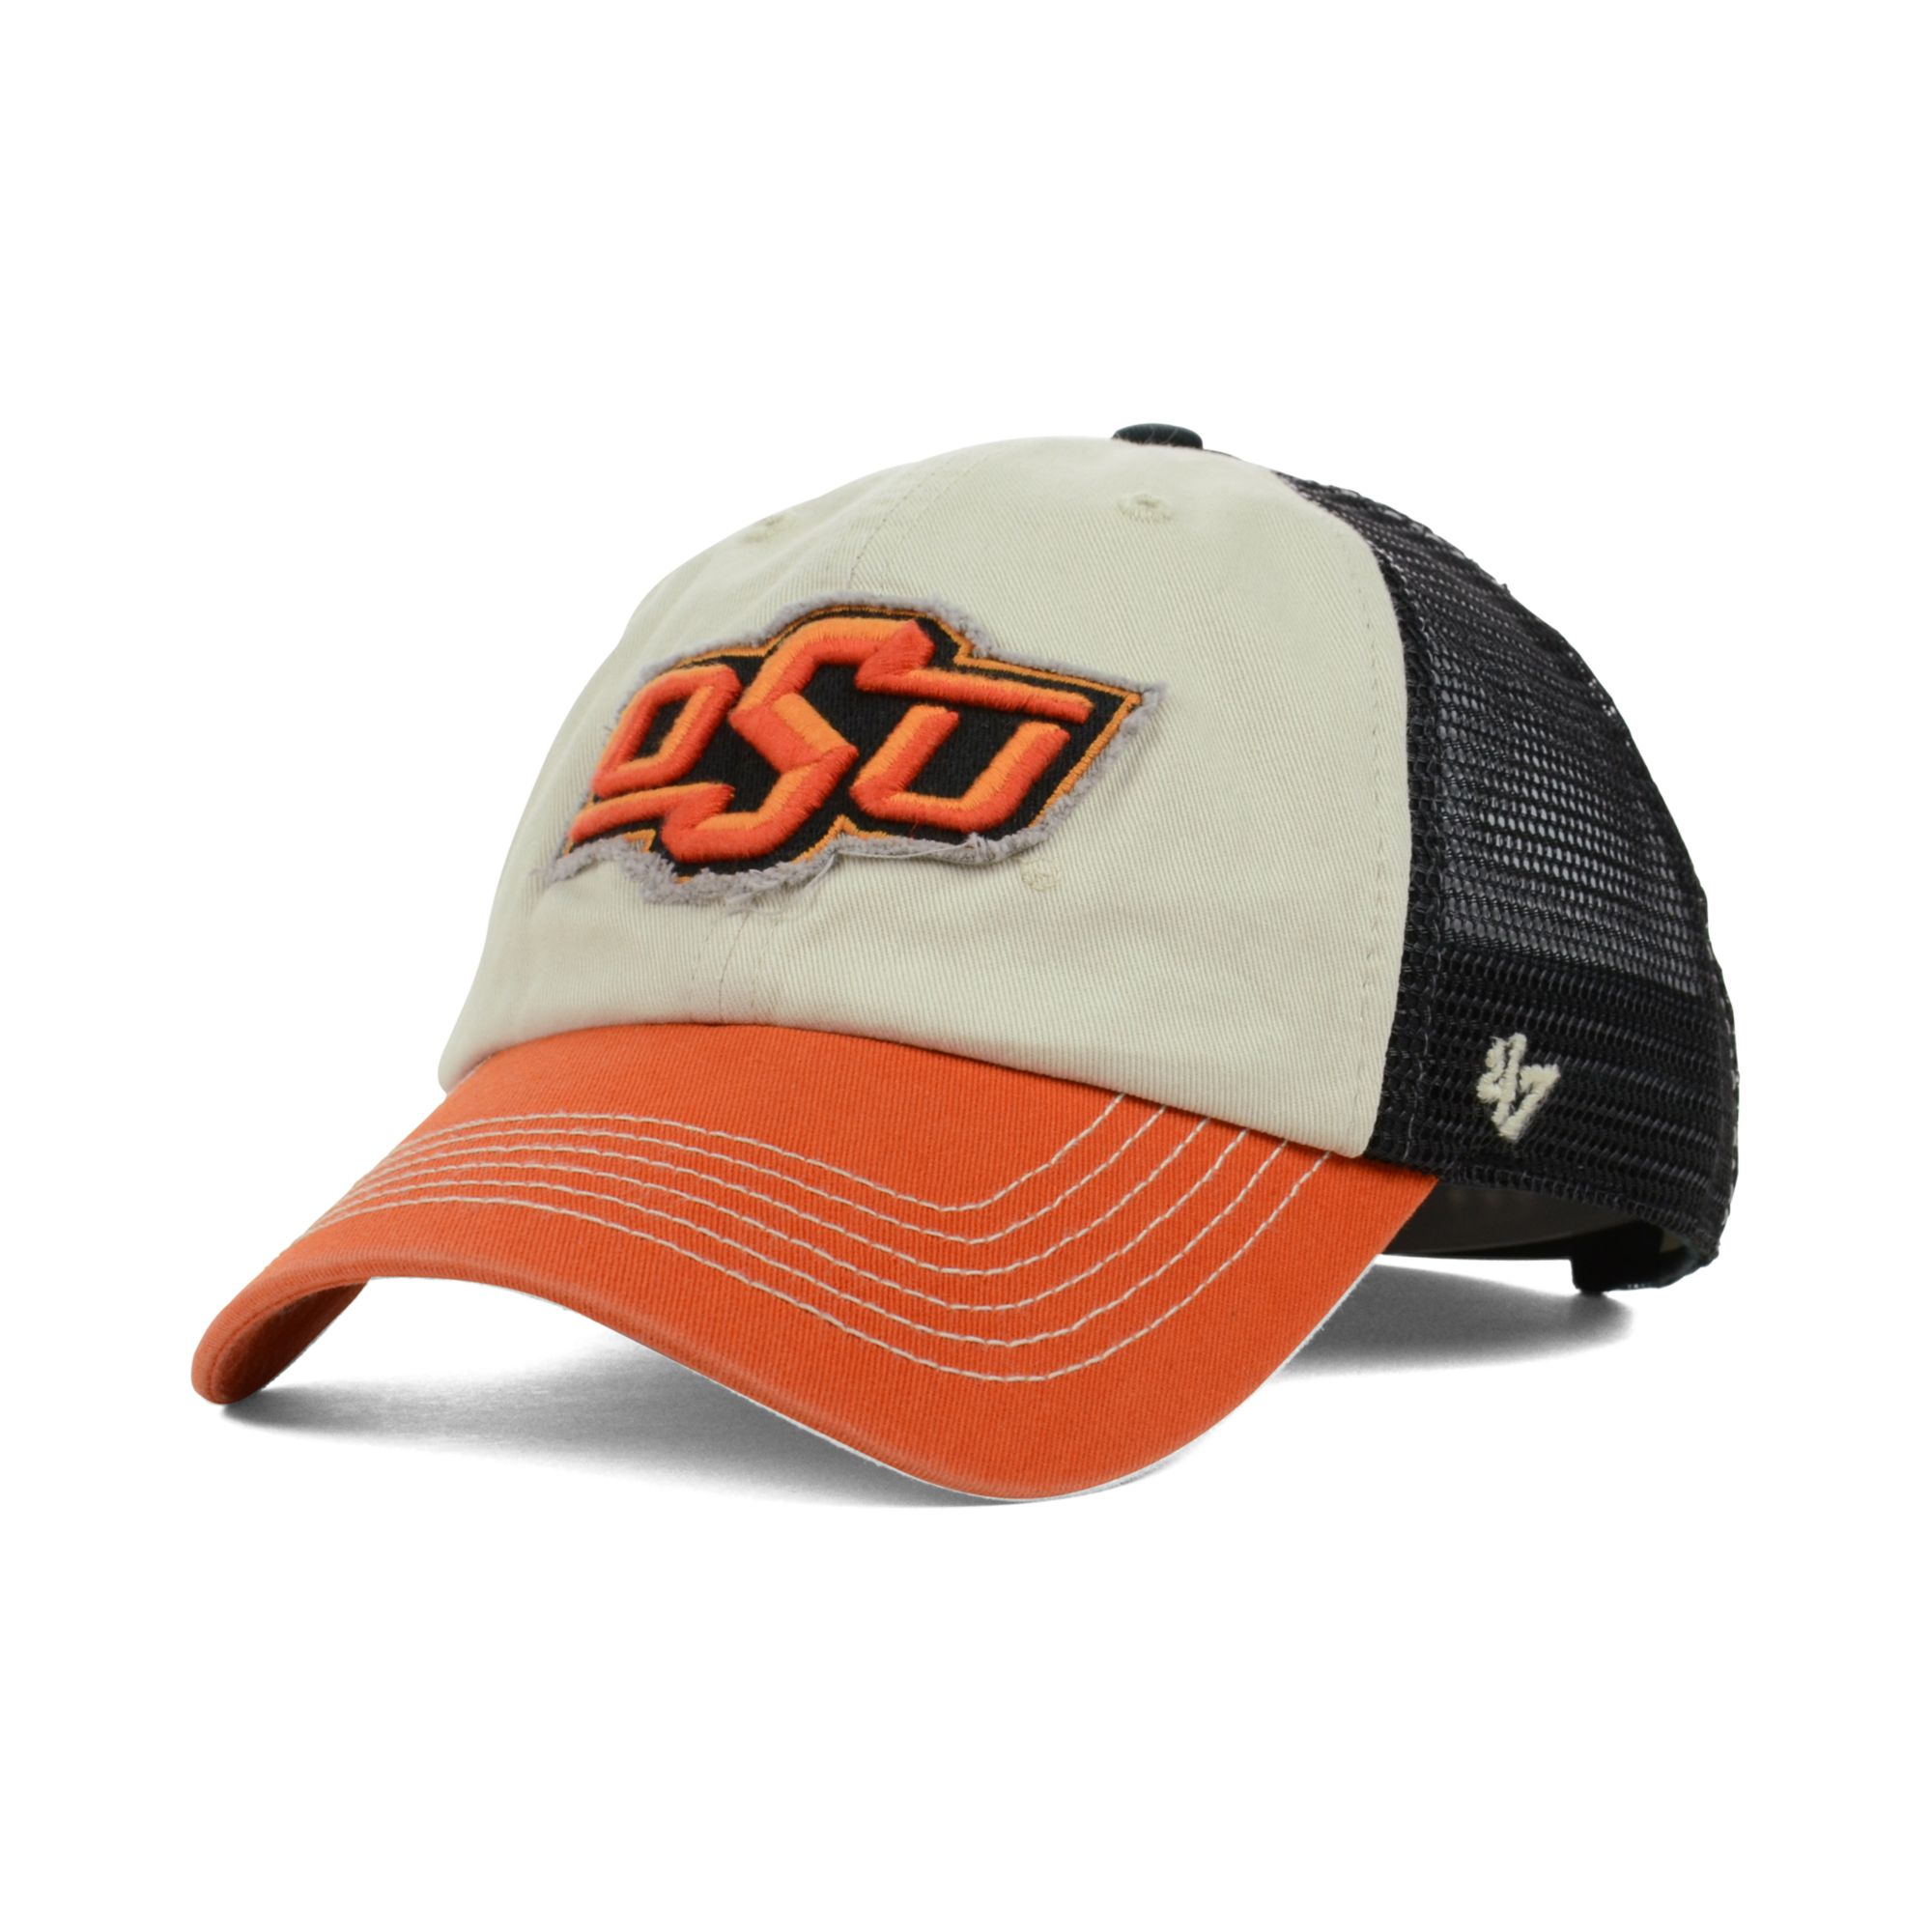 super popular 7a660 dc9be cheapest lyst 47 brand oklahoma state cowboys schist trucker cap in natural  7e887 74acf